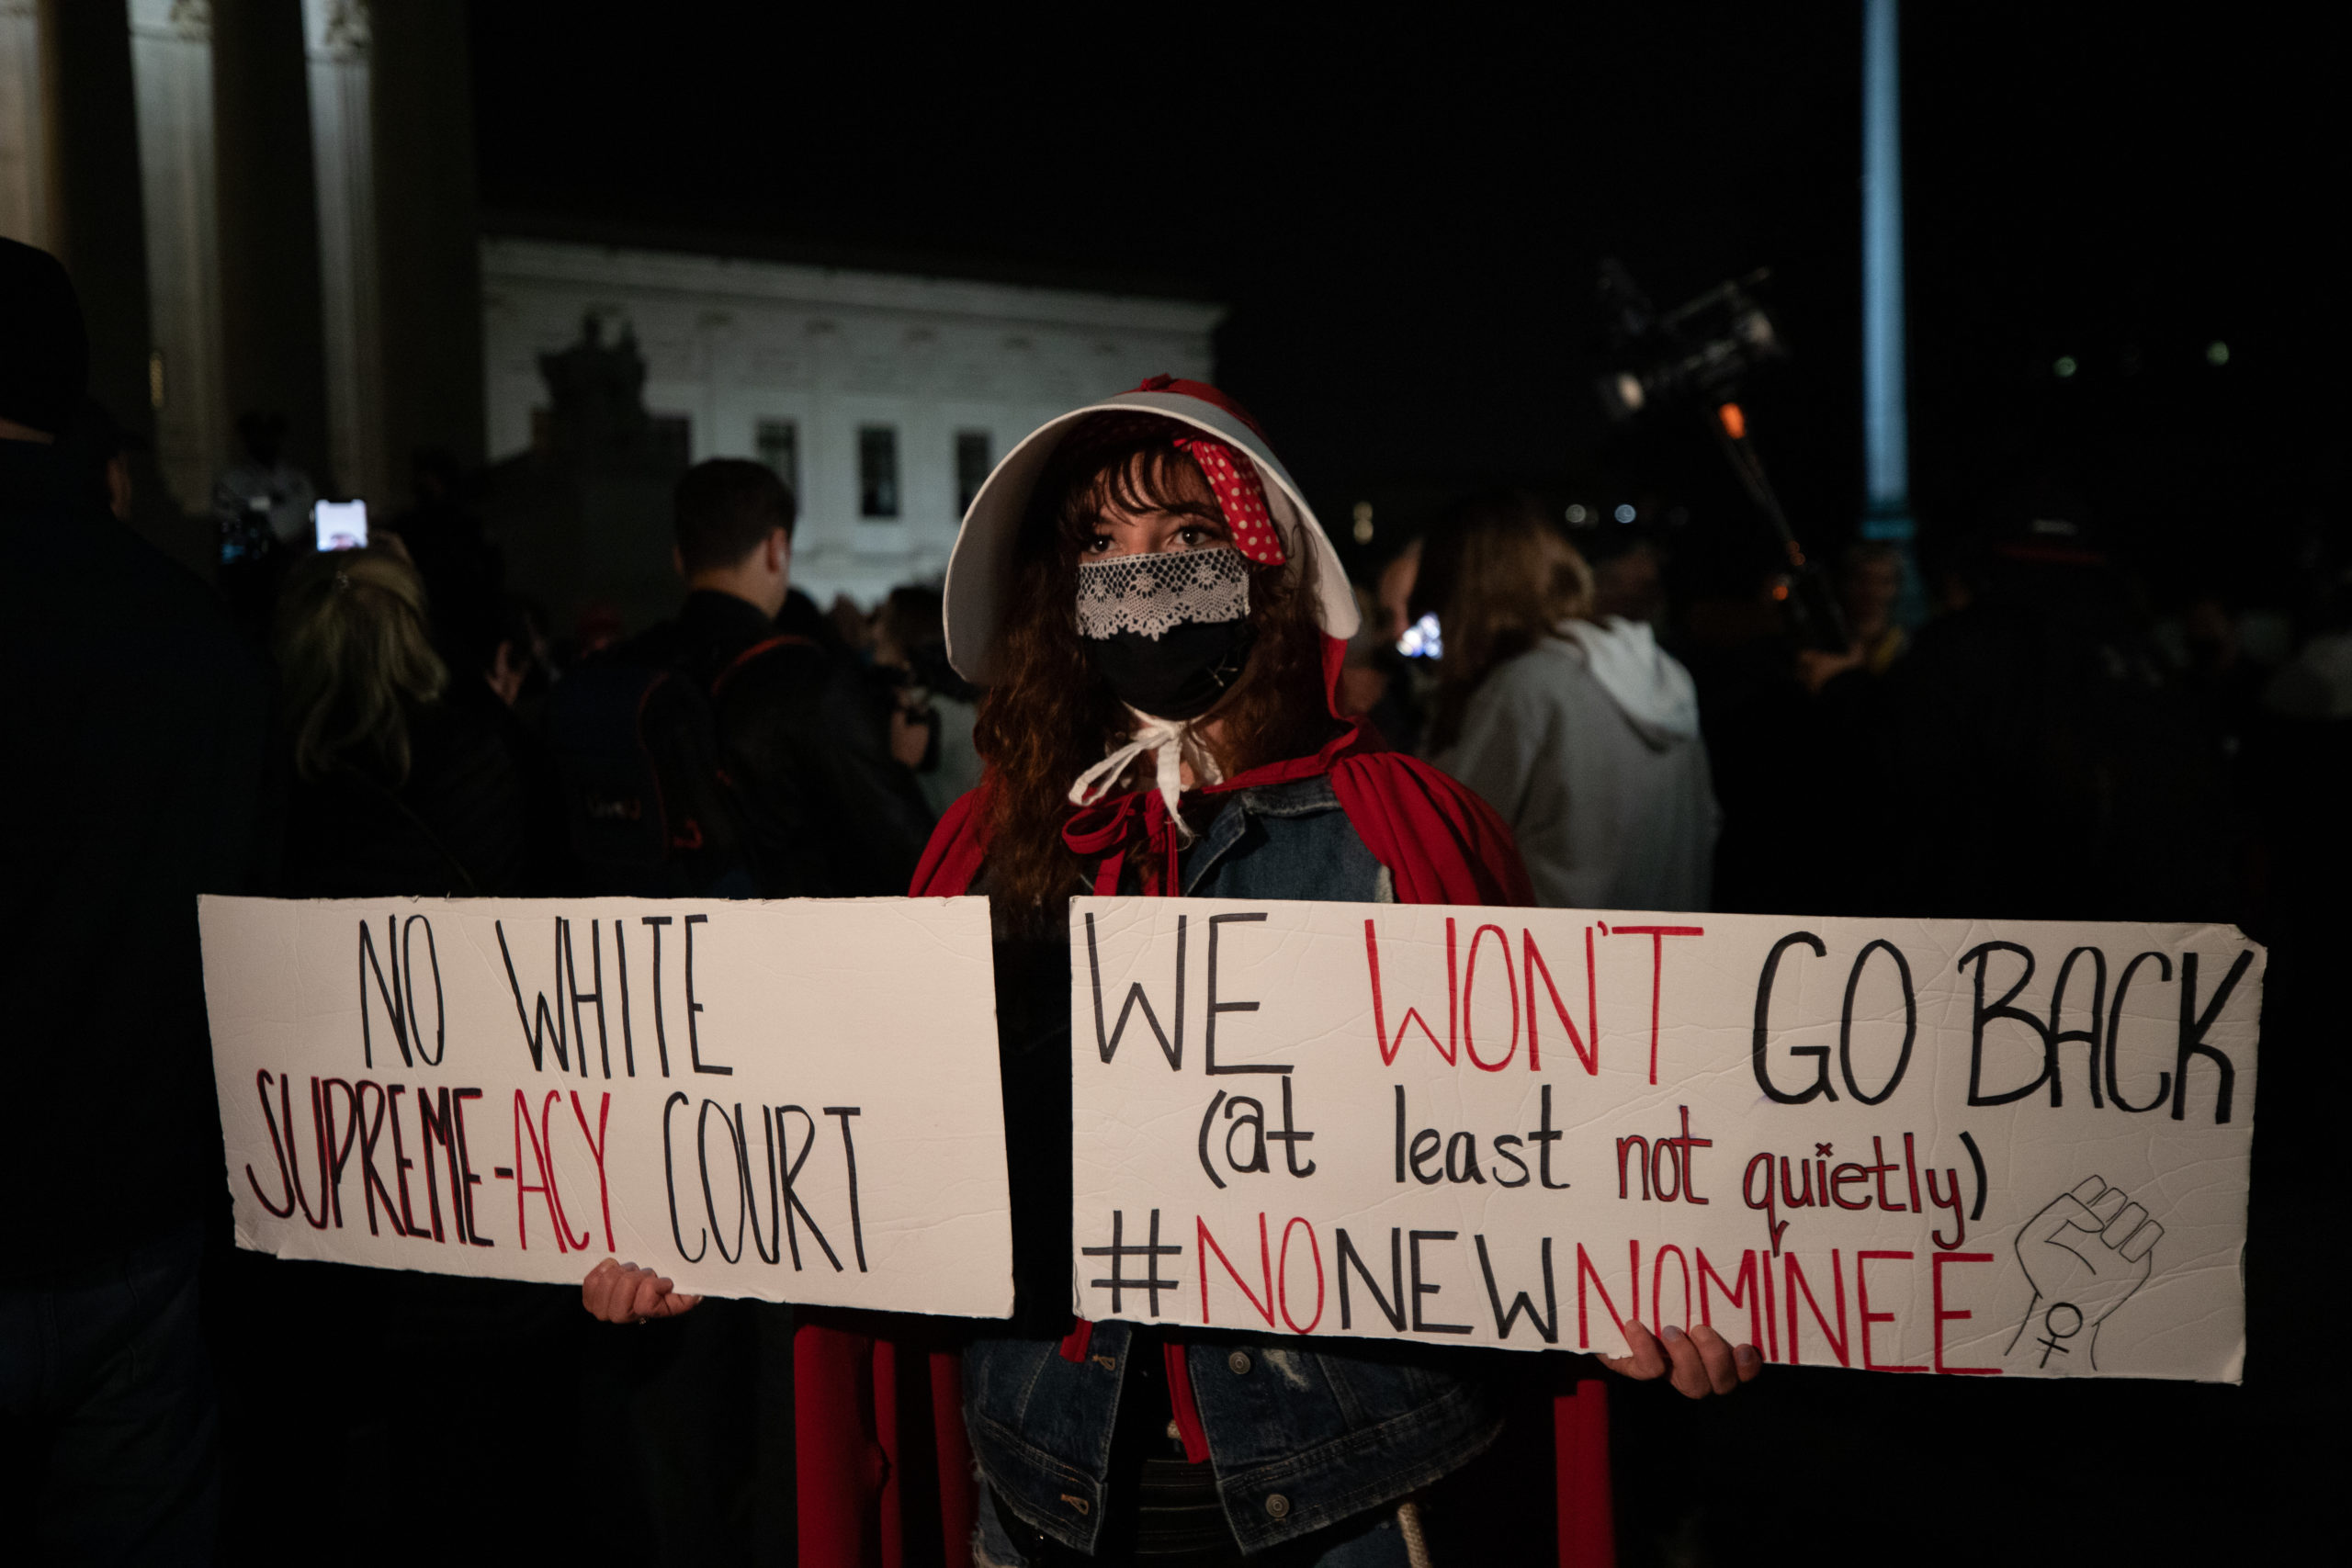 An anti-Amy Coney Barrett protester dressed as a handmaid just before the results of the Senate vote to confirm Amy Coney Barrett in Washington, D.C. on October 26, 2020. (Kaylee Greenlee - Daily Caller News Foundation)